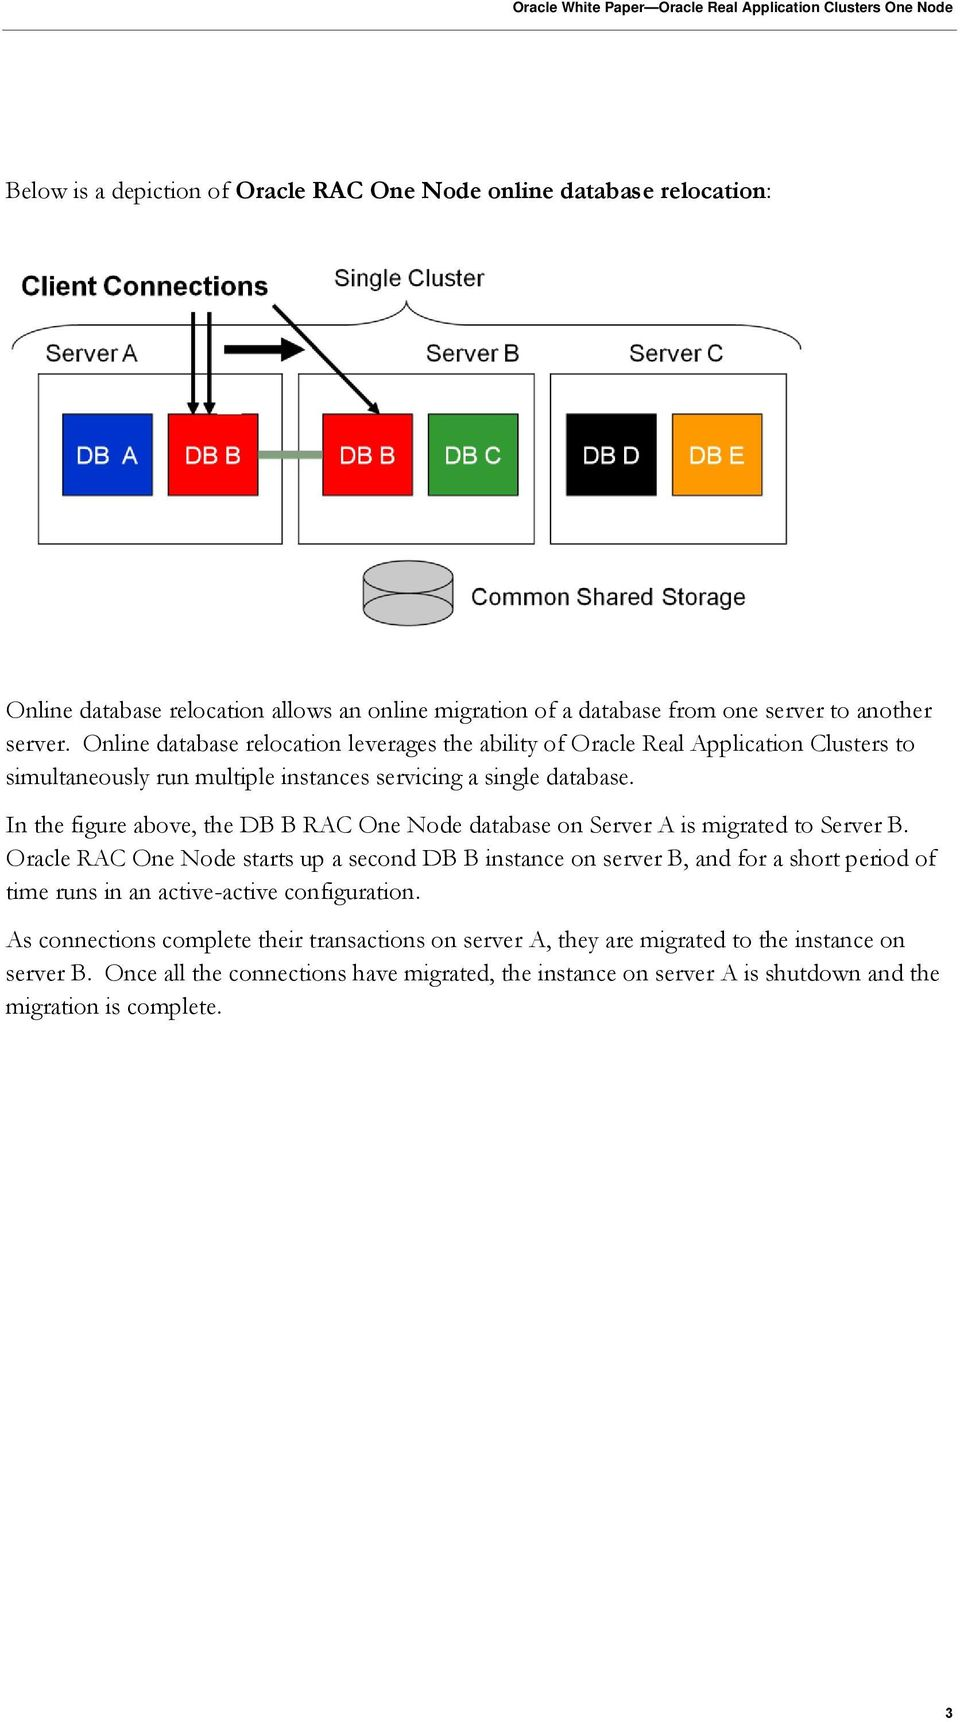 In the figure above, the DB B RAC One Node database on Server A is migrated to Server B.